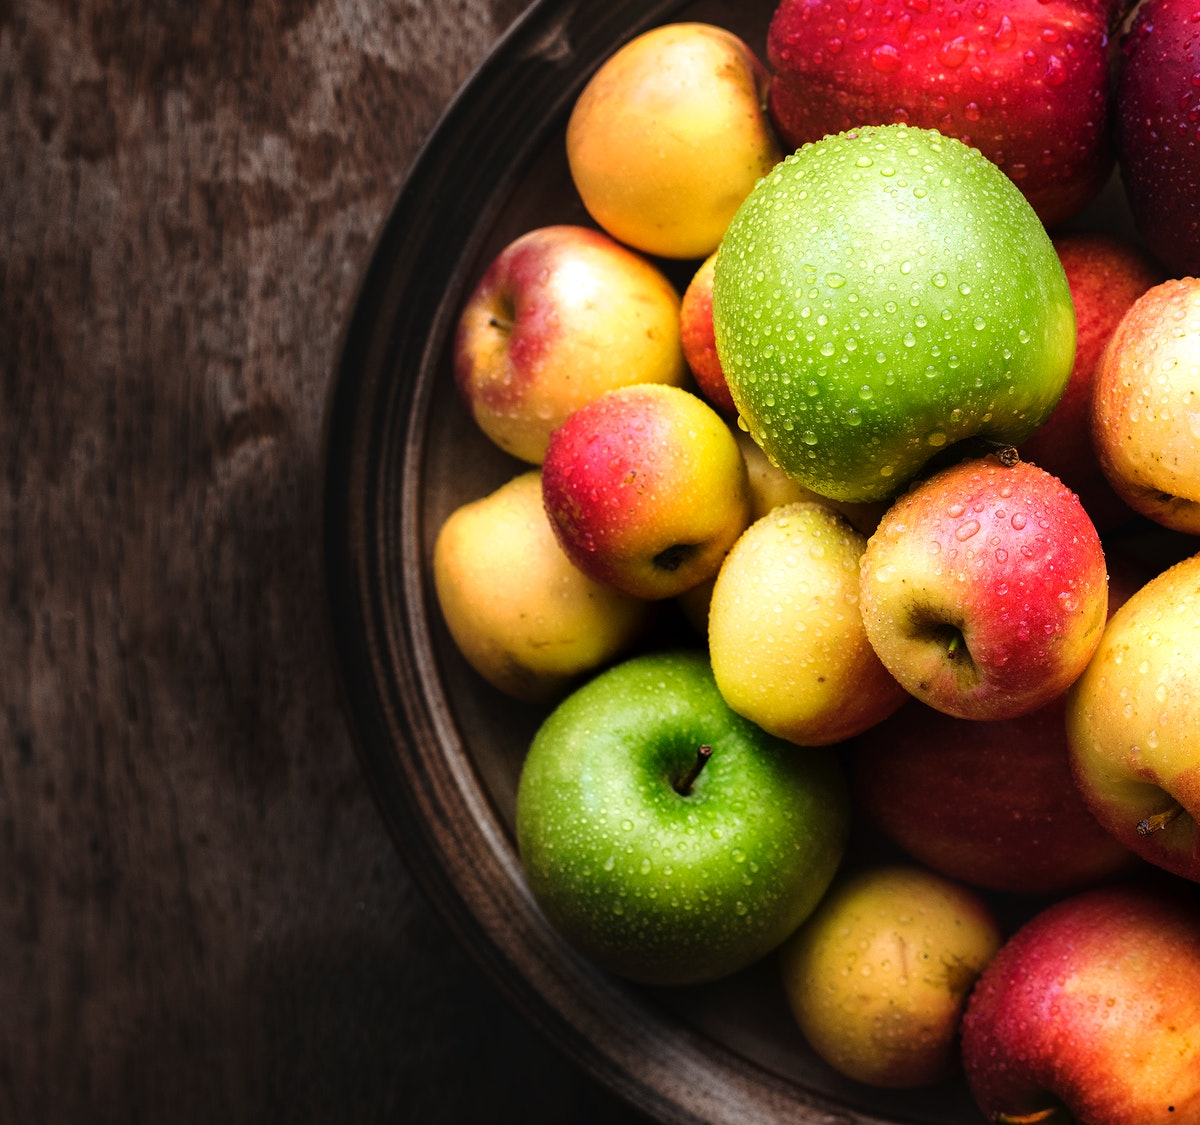 Fresh apples in a bowl